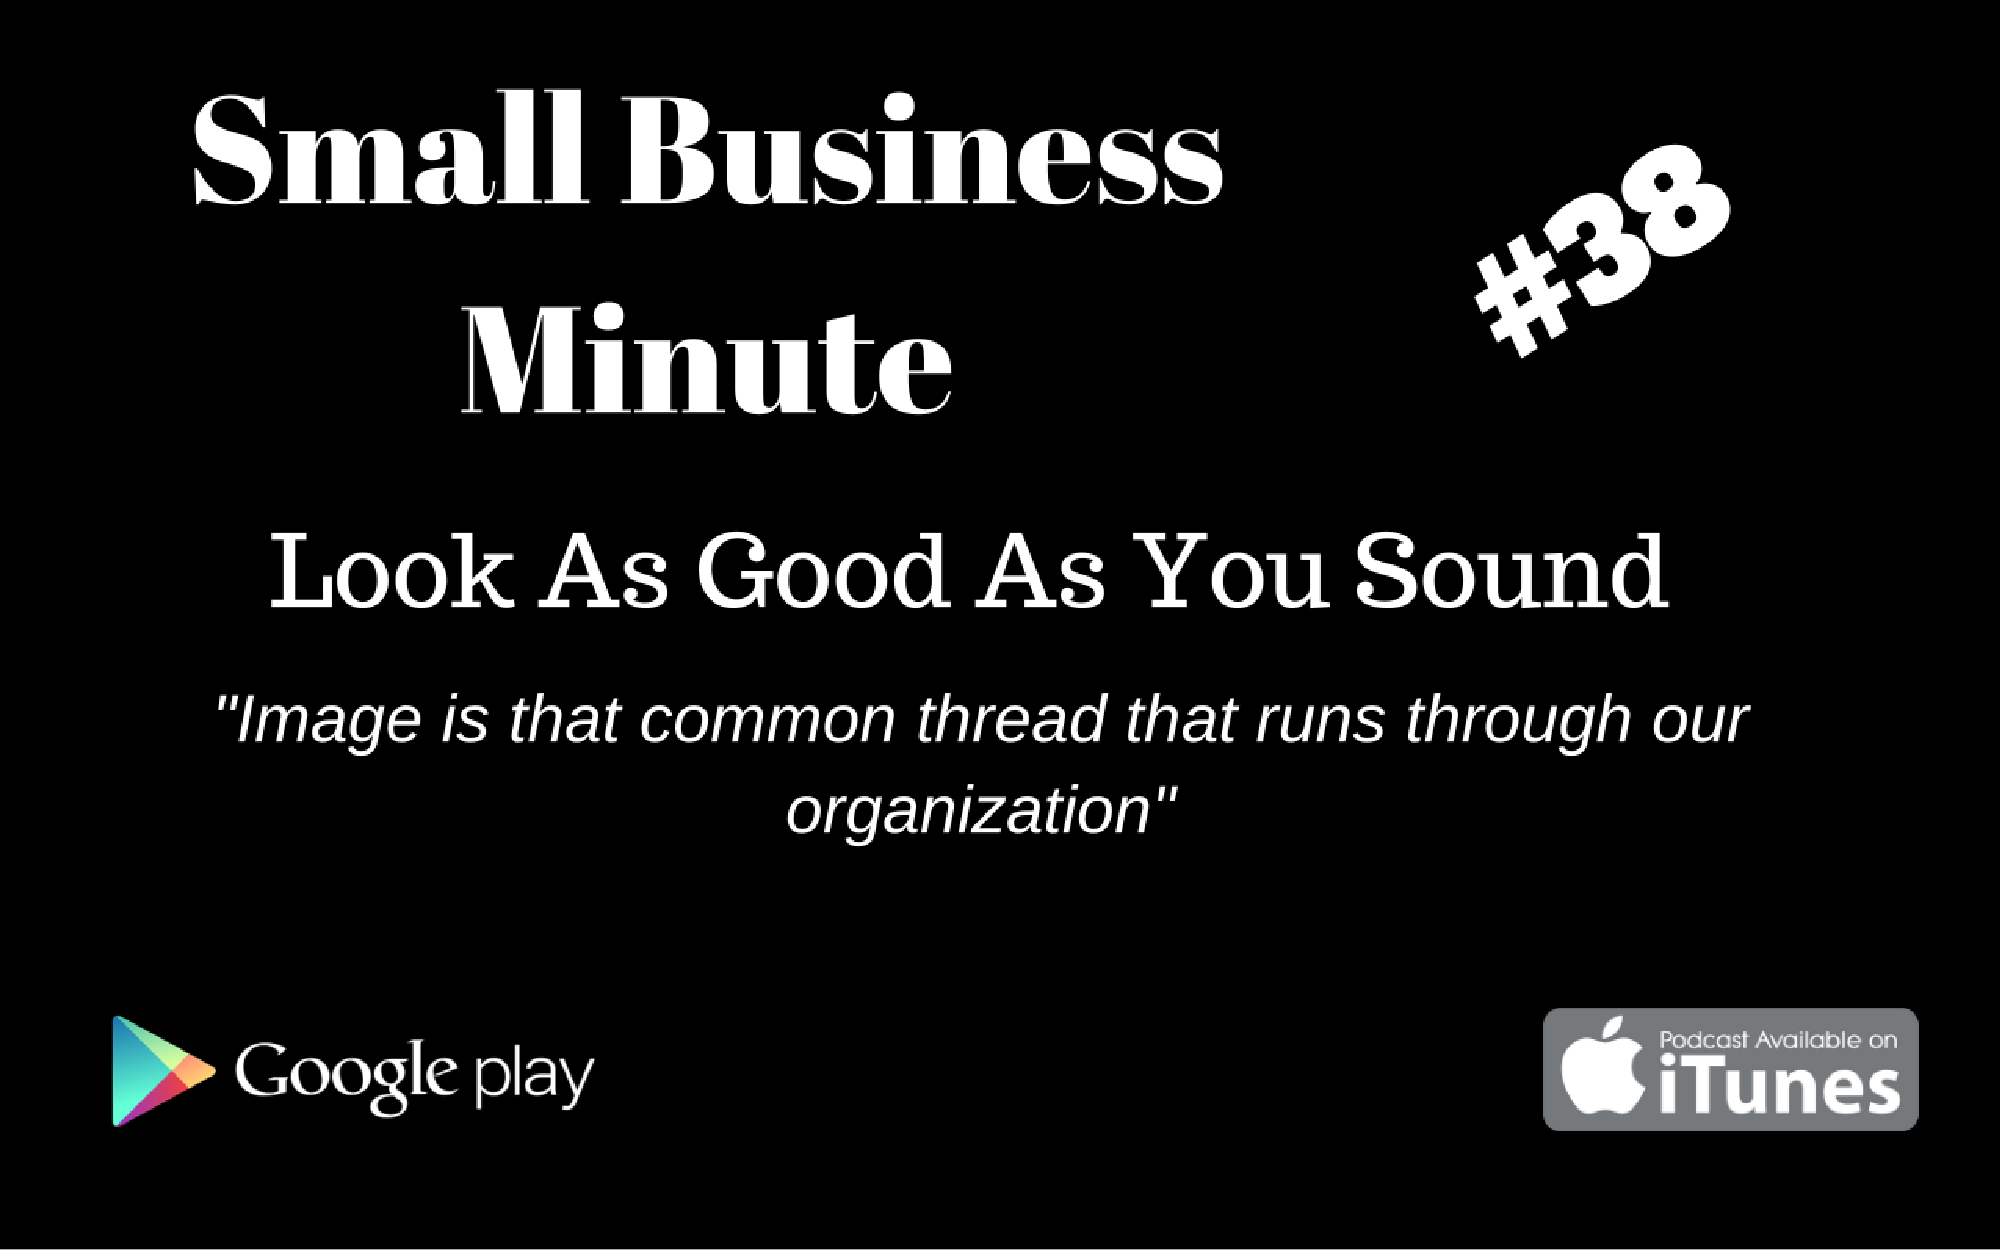 small-business-minute-38-look-as-good-as-you-sound